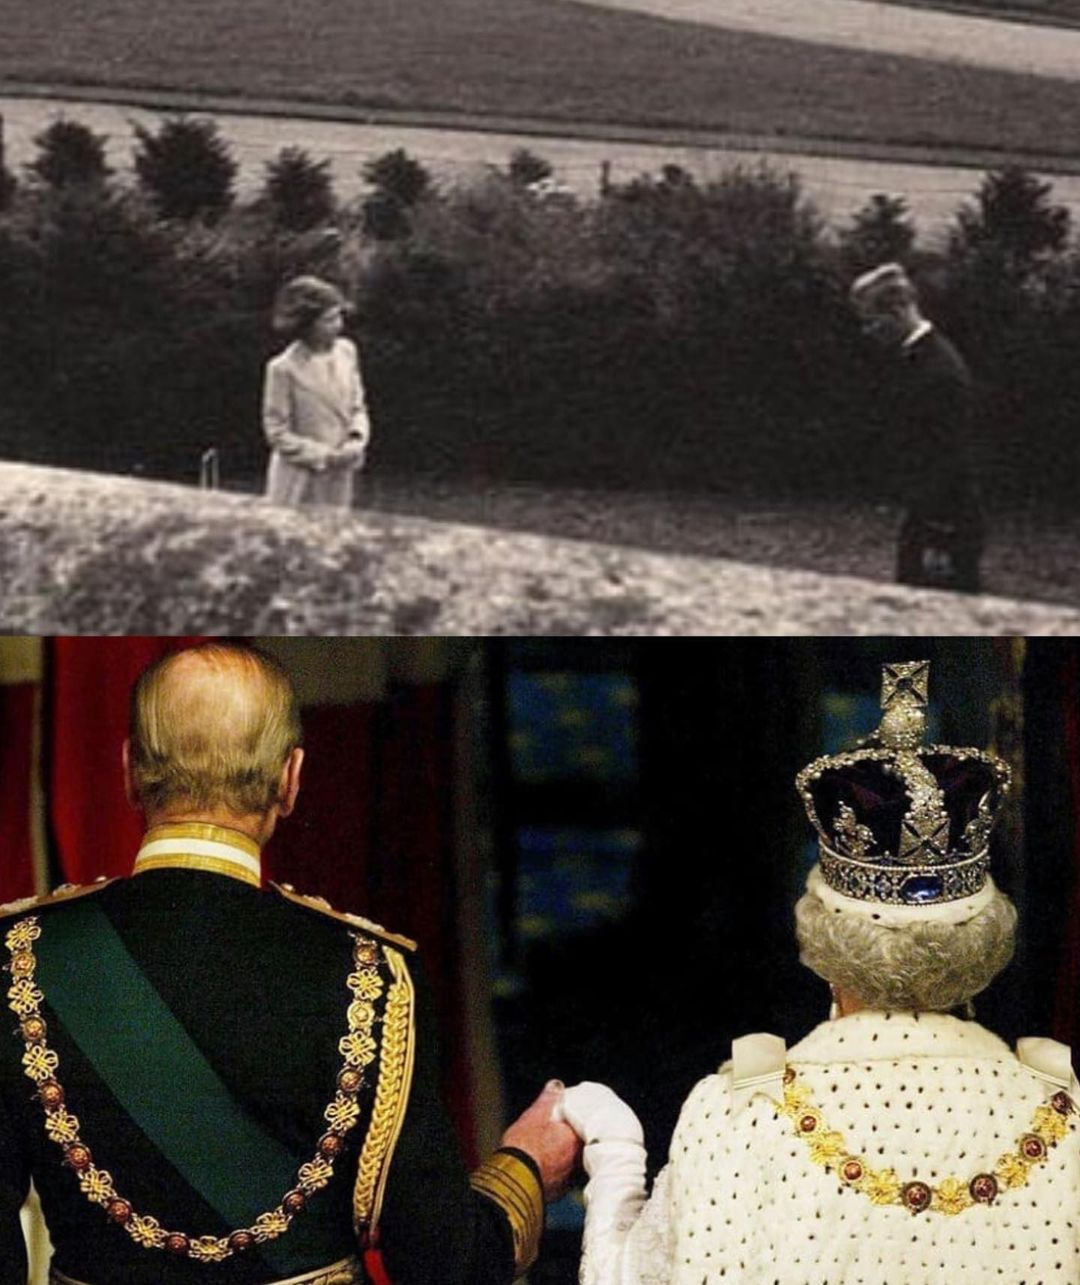 The Hellenic Royal Family On Instagram Part Ii Today At The Age Of 94 Hm Queen Elizabeth Ii Becomes The W In 2021 Queen Elizabeth Ii Prince Philip Elizabeth Ii